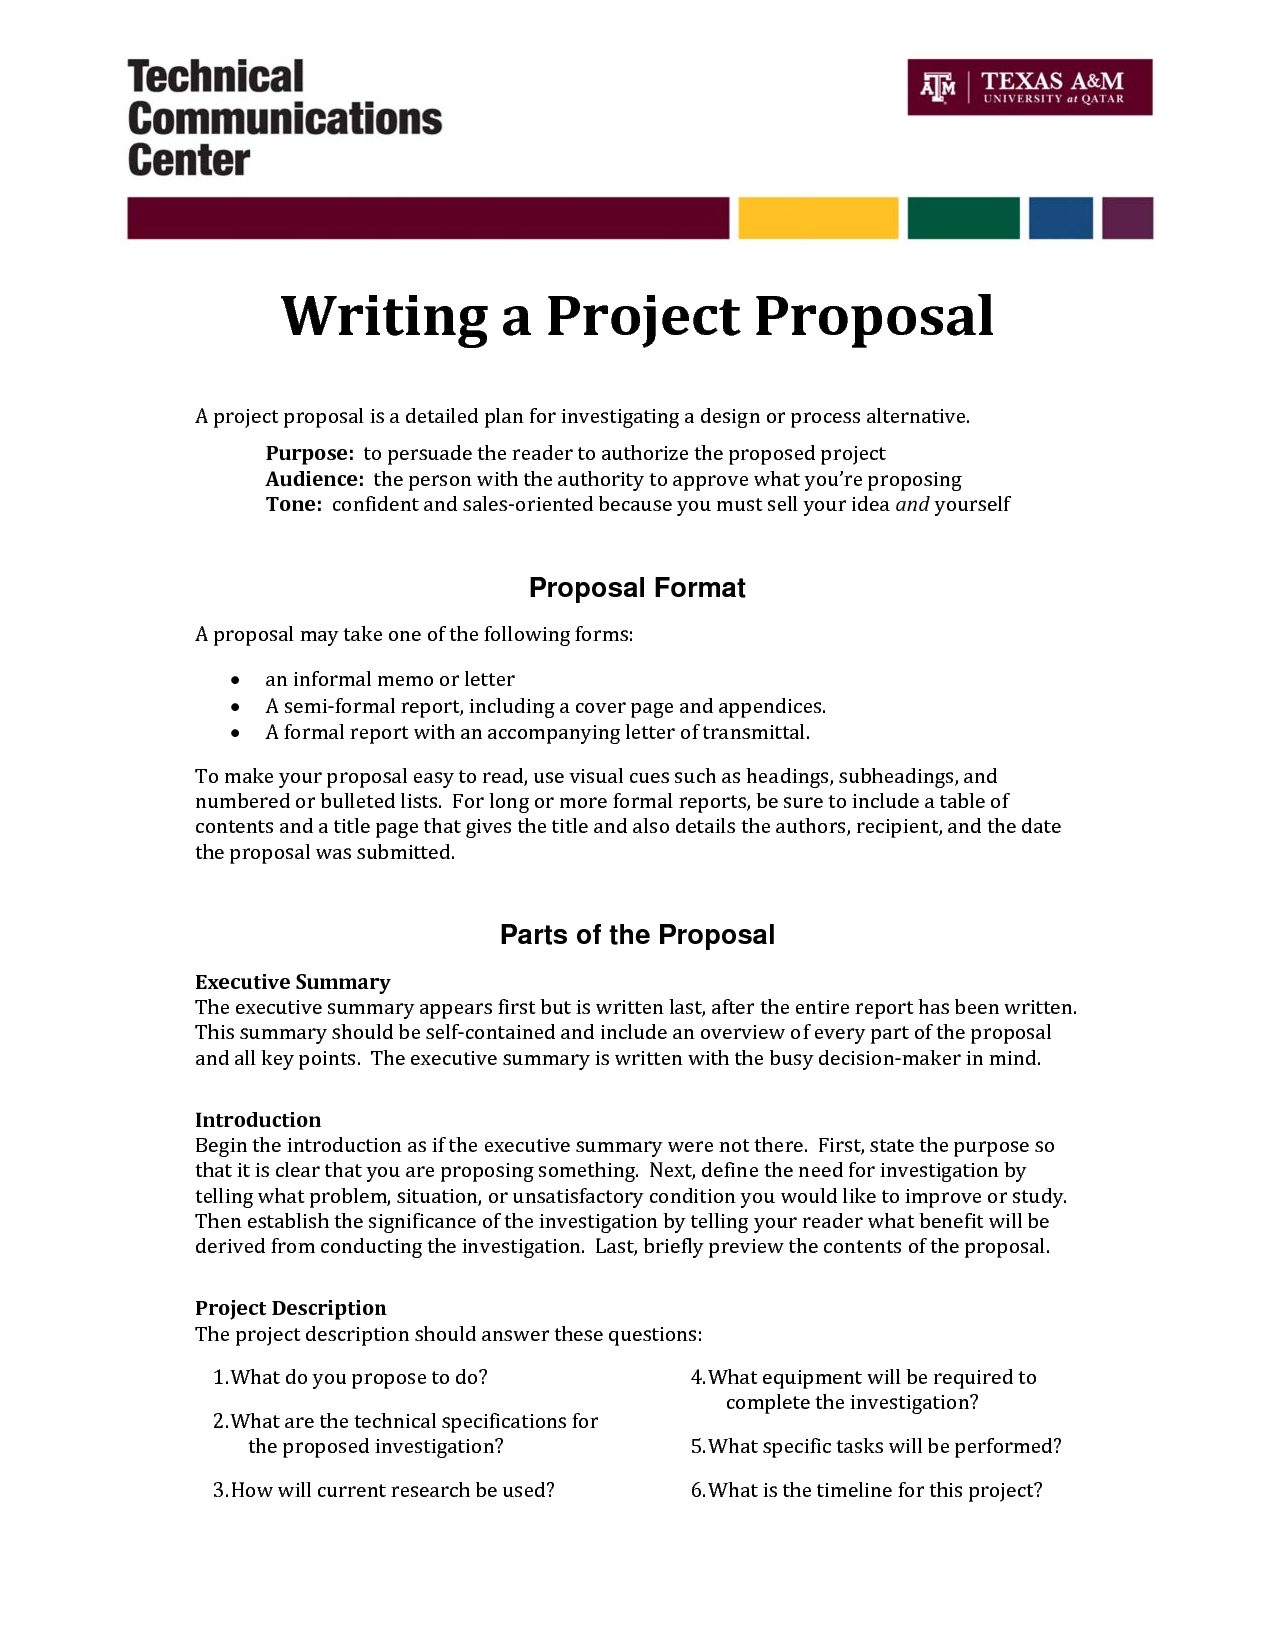 Informal proposal letter example writing a project proposal a informal proposal letter example writing a project proposal a project proposal is a detailed thecheapjerseys